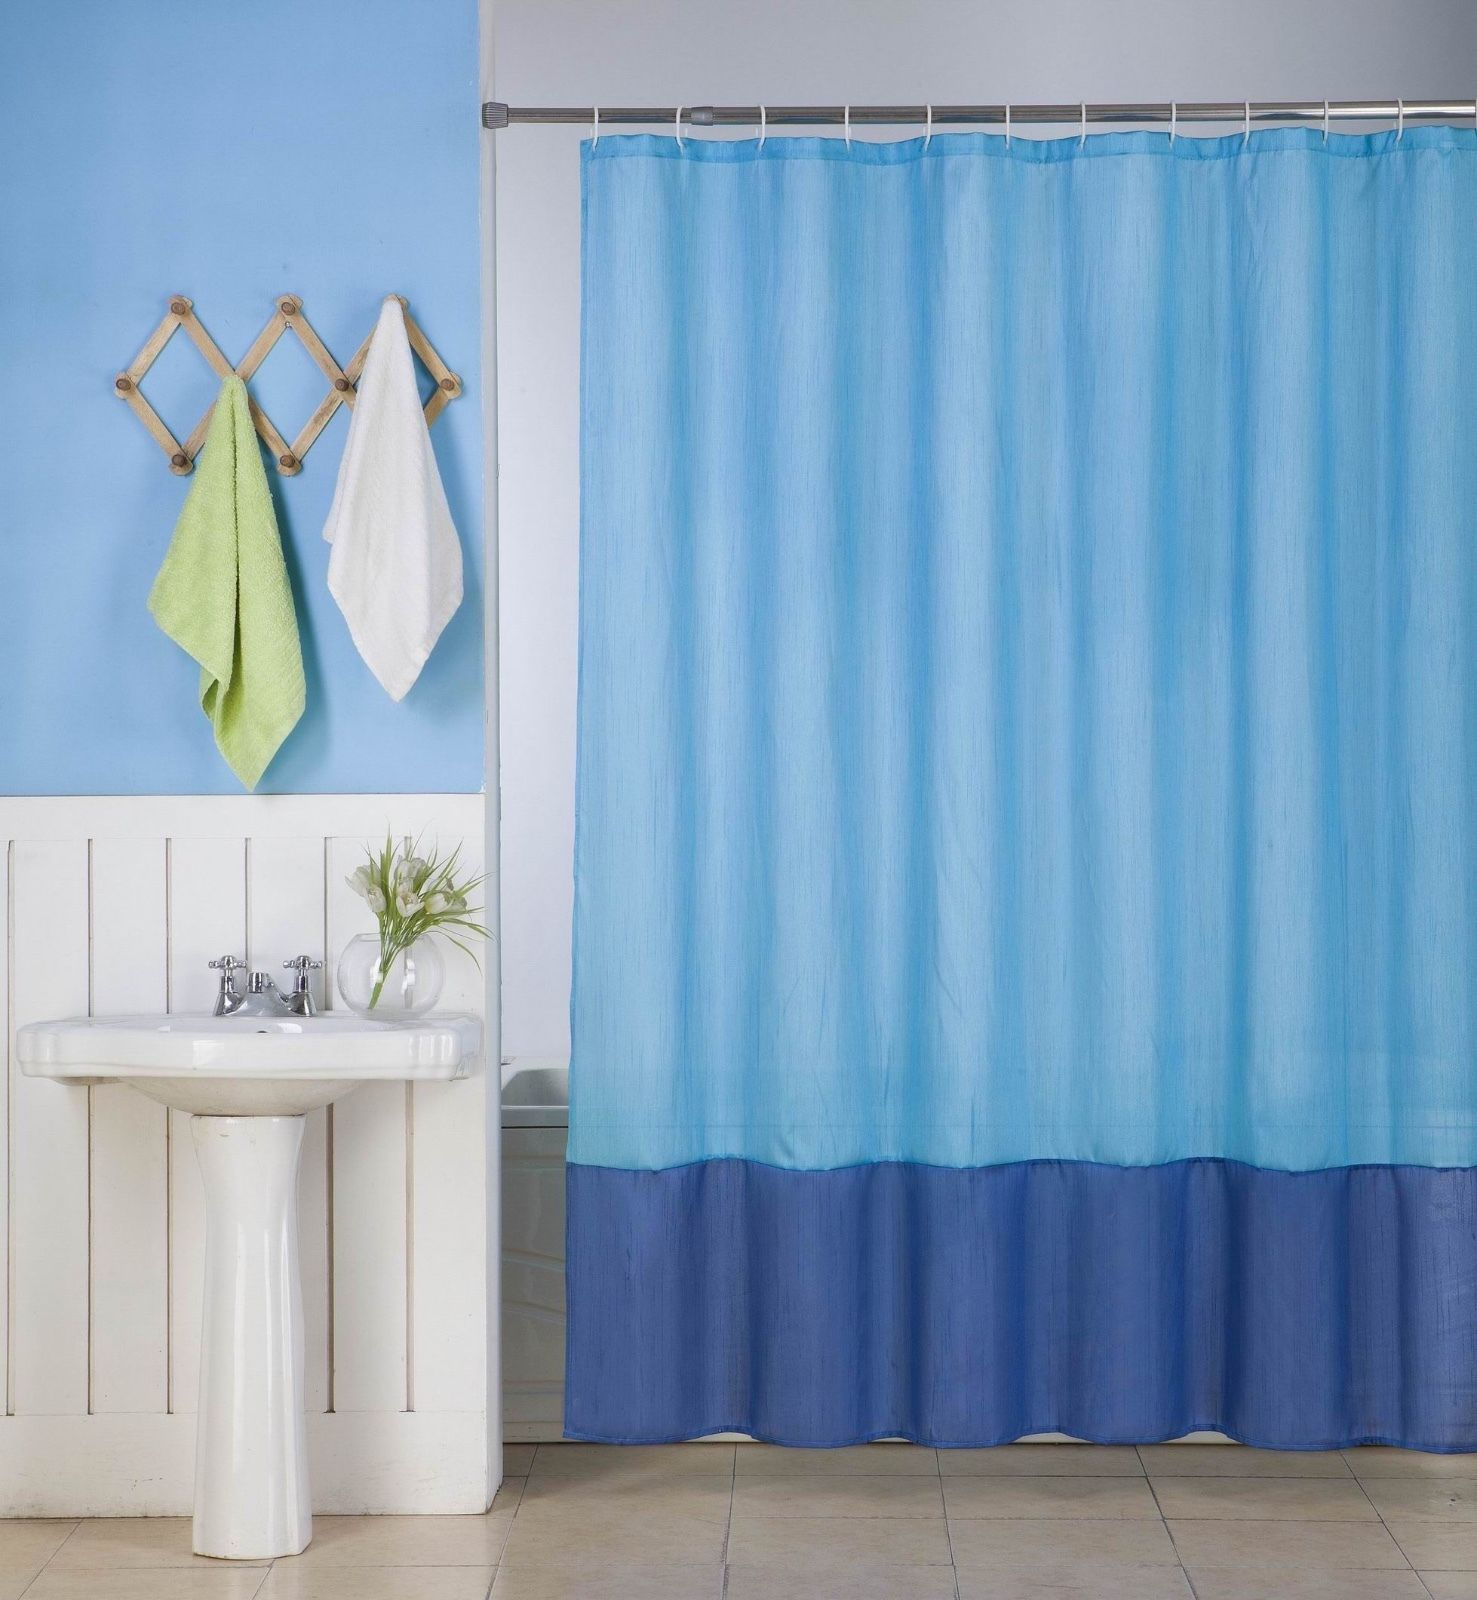 "1PC (H10) TURQUOISE ROYAL BLUE FAUX SILK 2 SHADES SOLID BATHROOM  BATH FABRIC SHOWER CURTAIN  WATER REPELLENT 72"" X72"""